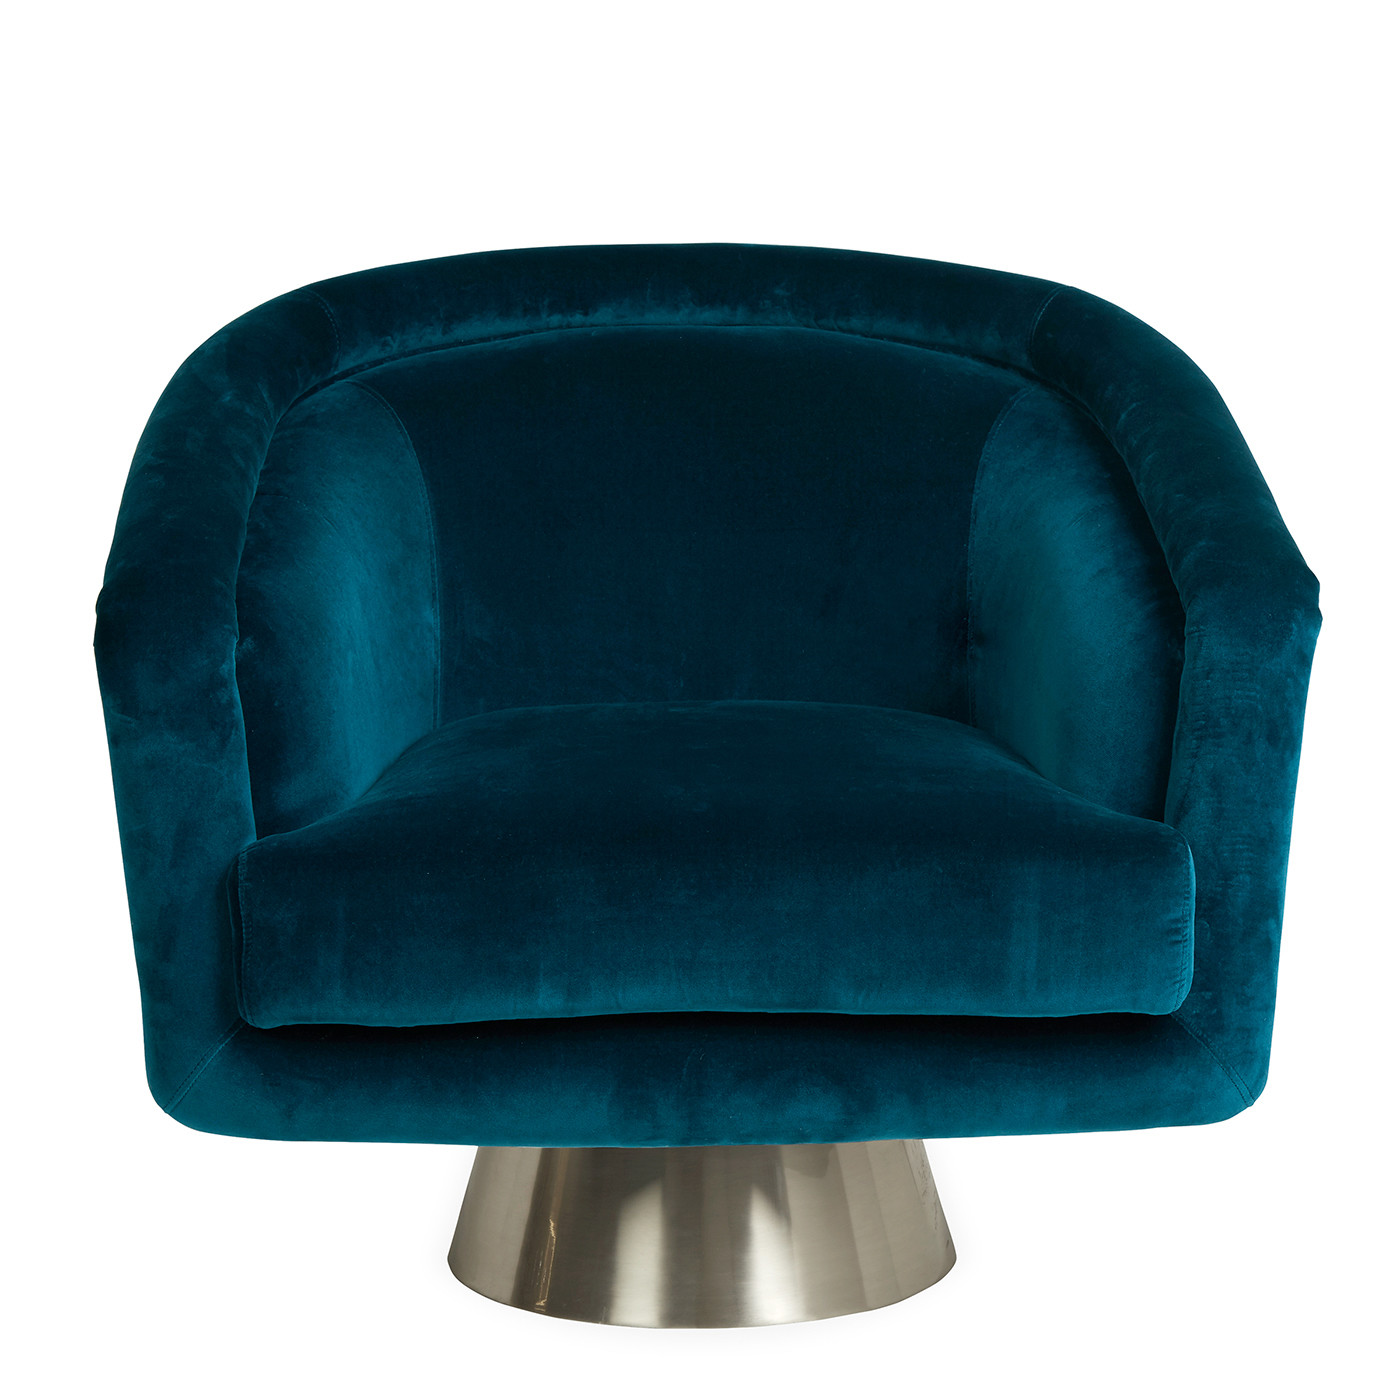 Bacharach Swivel Chair | Rialto Reef